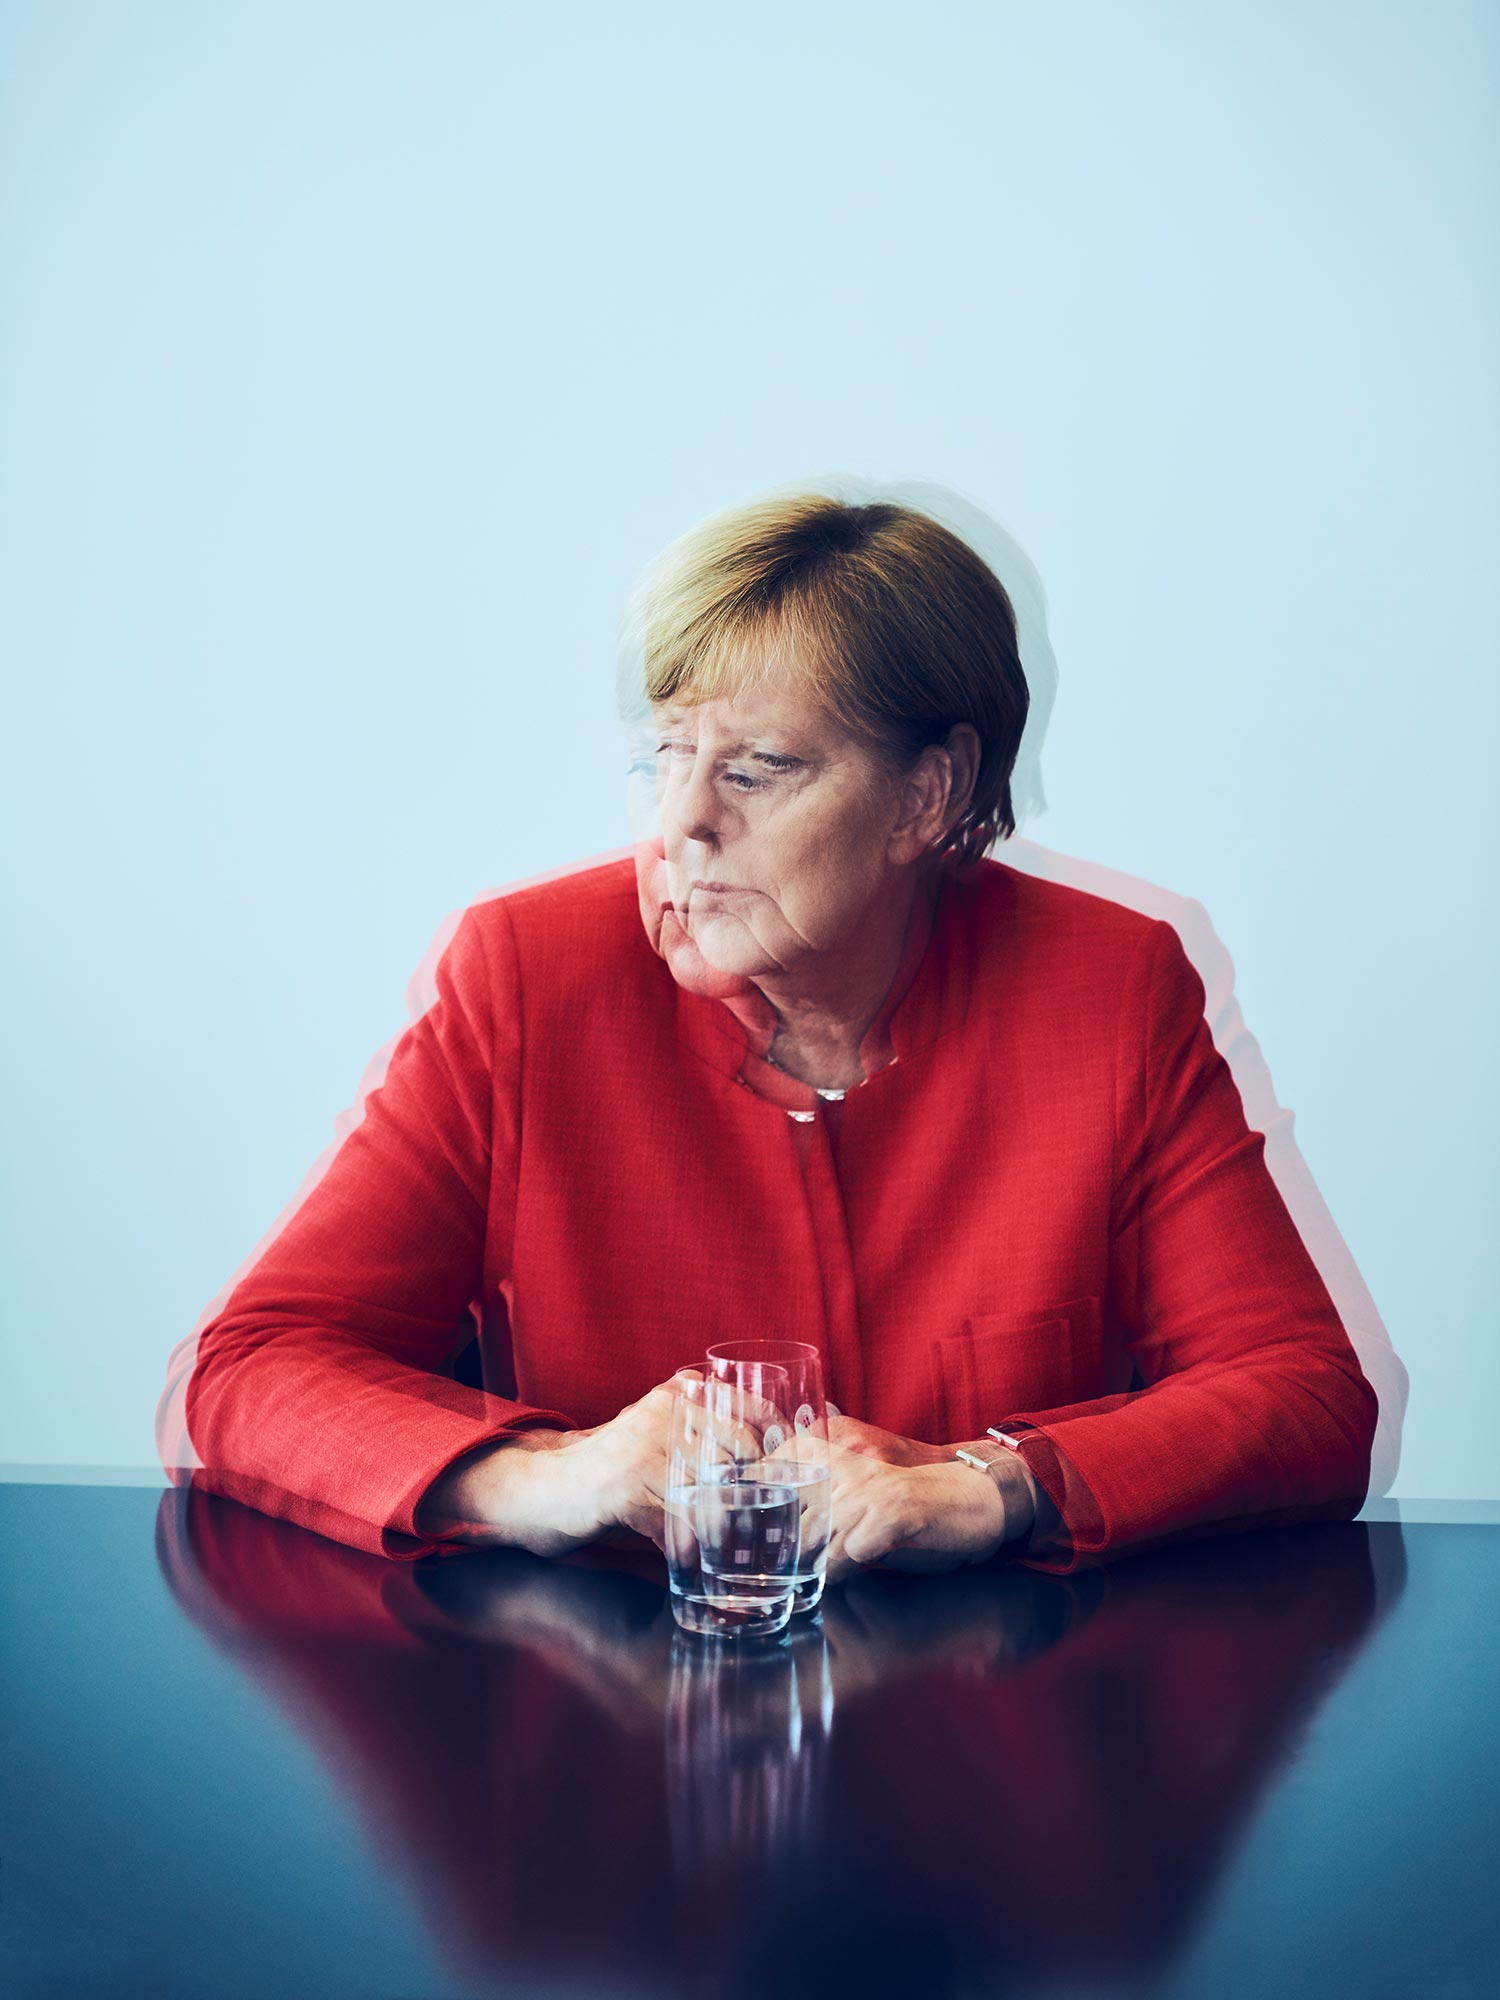 urban zintel photography — angela merkel IV